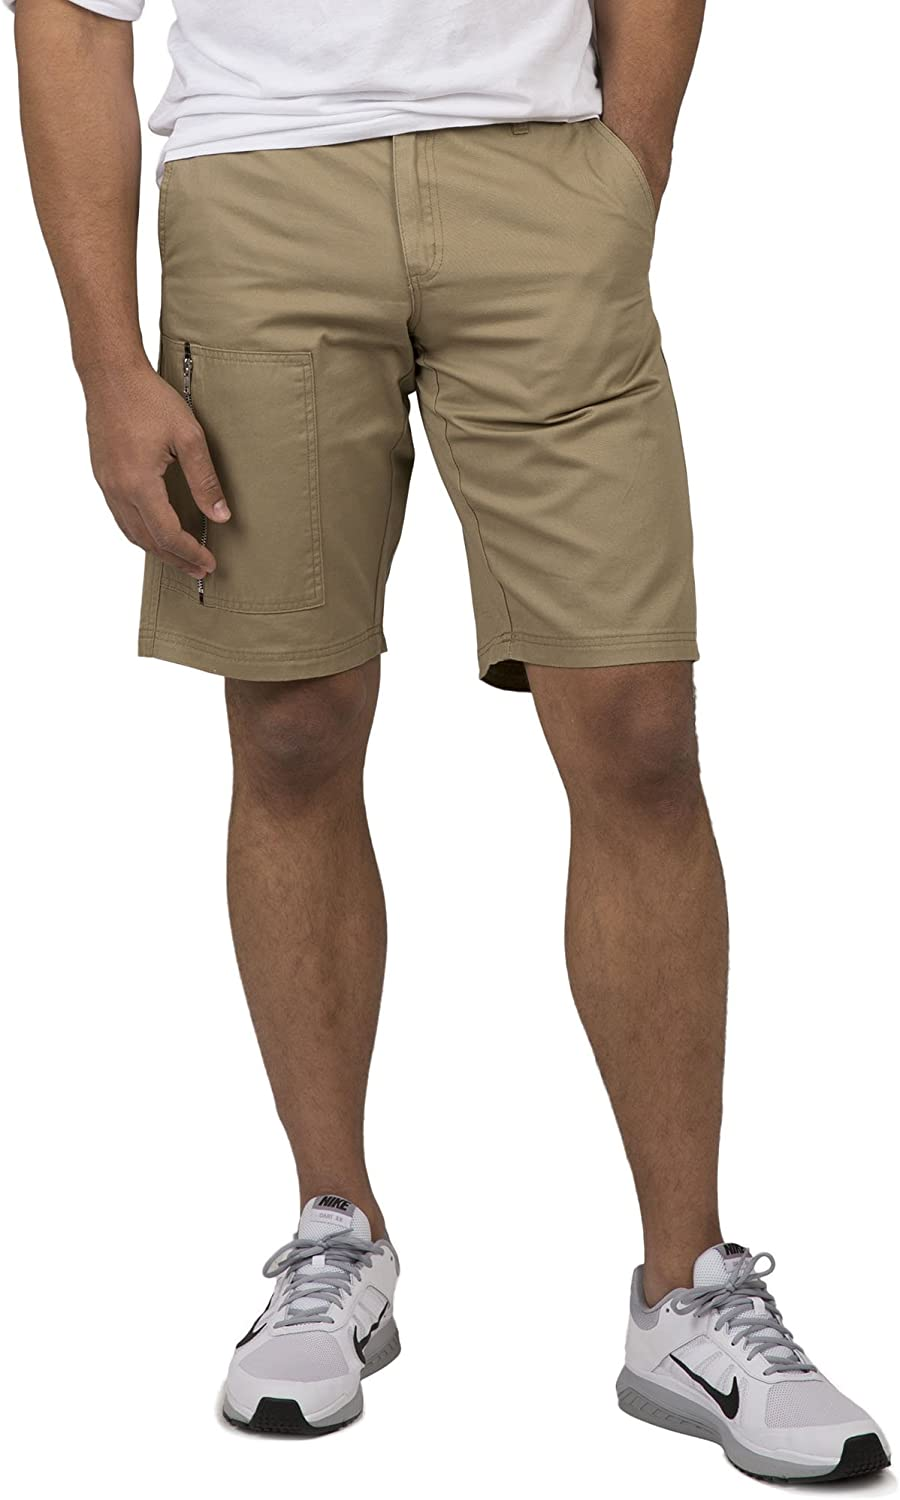 Vibes Mens Twill Cargo Shorts Zipper Utility Pocket 11 Inseam